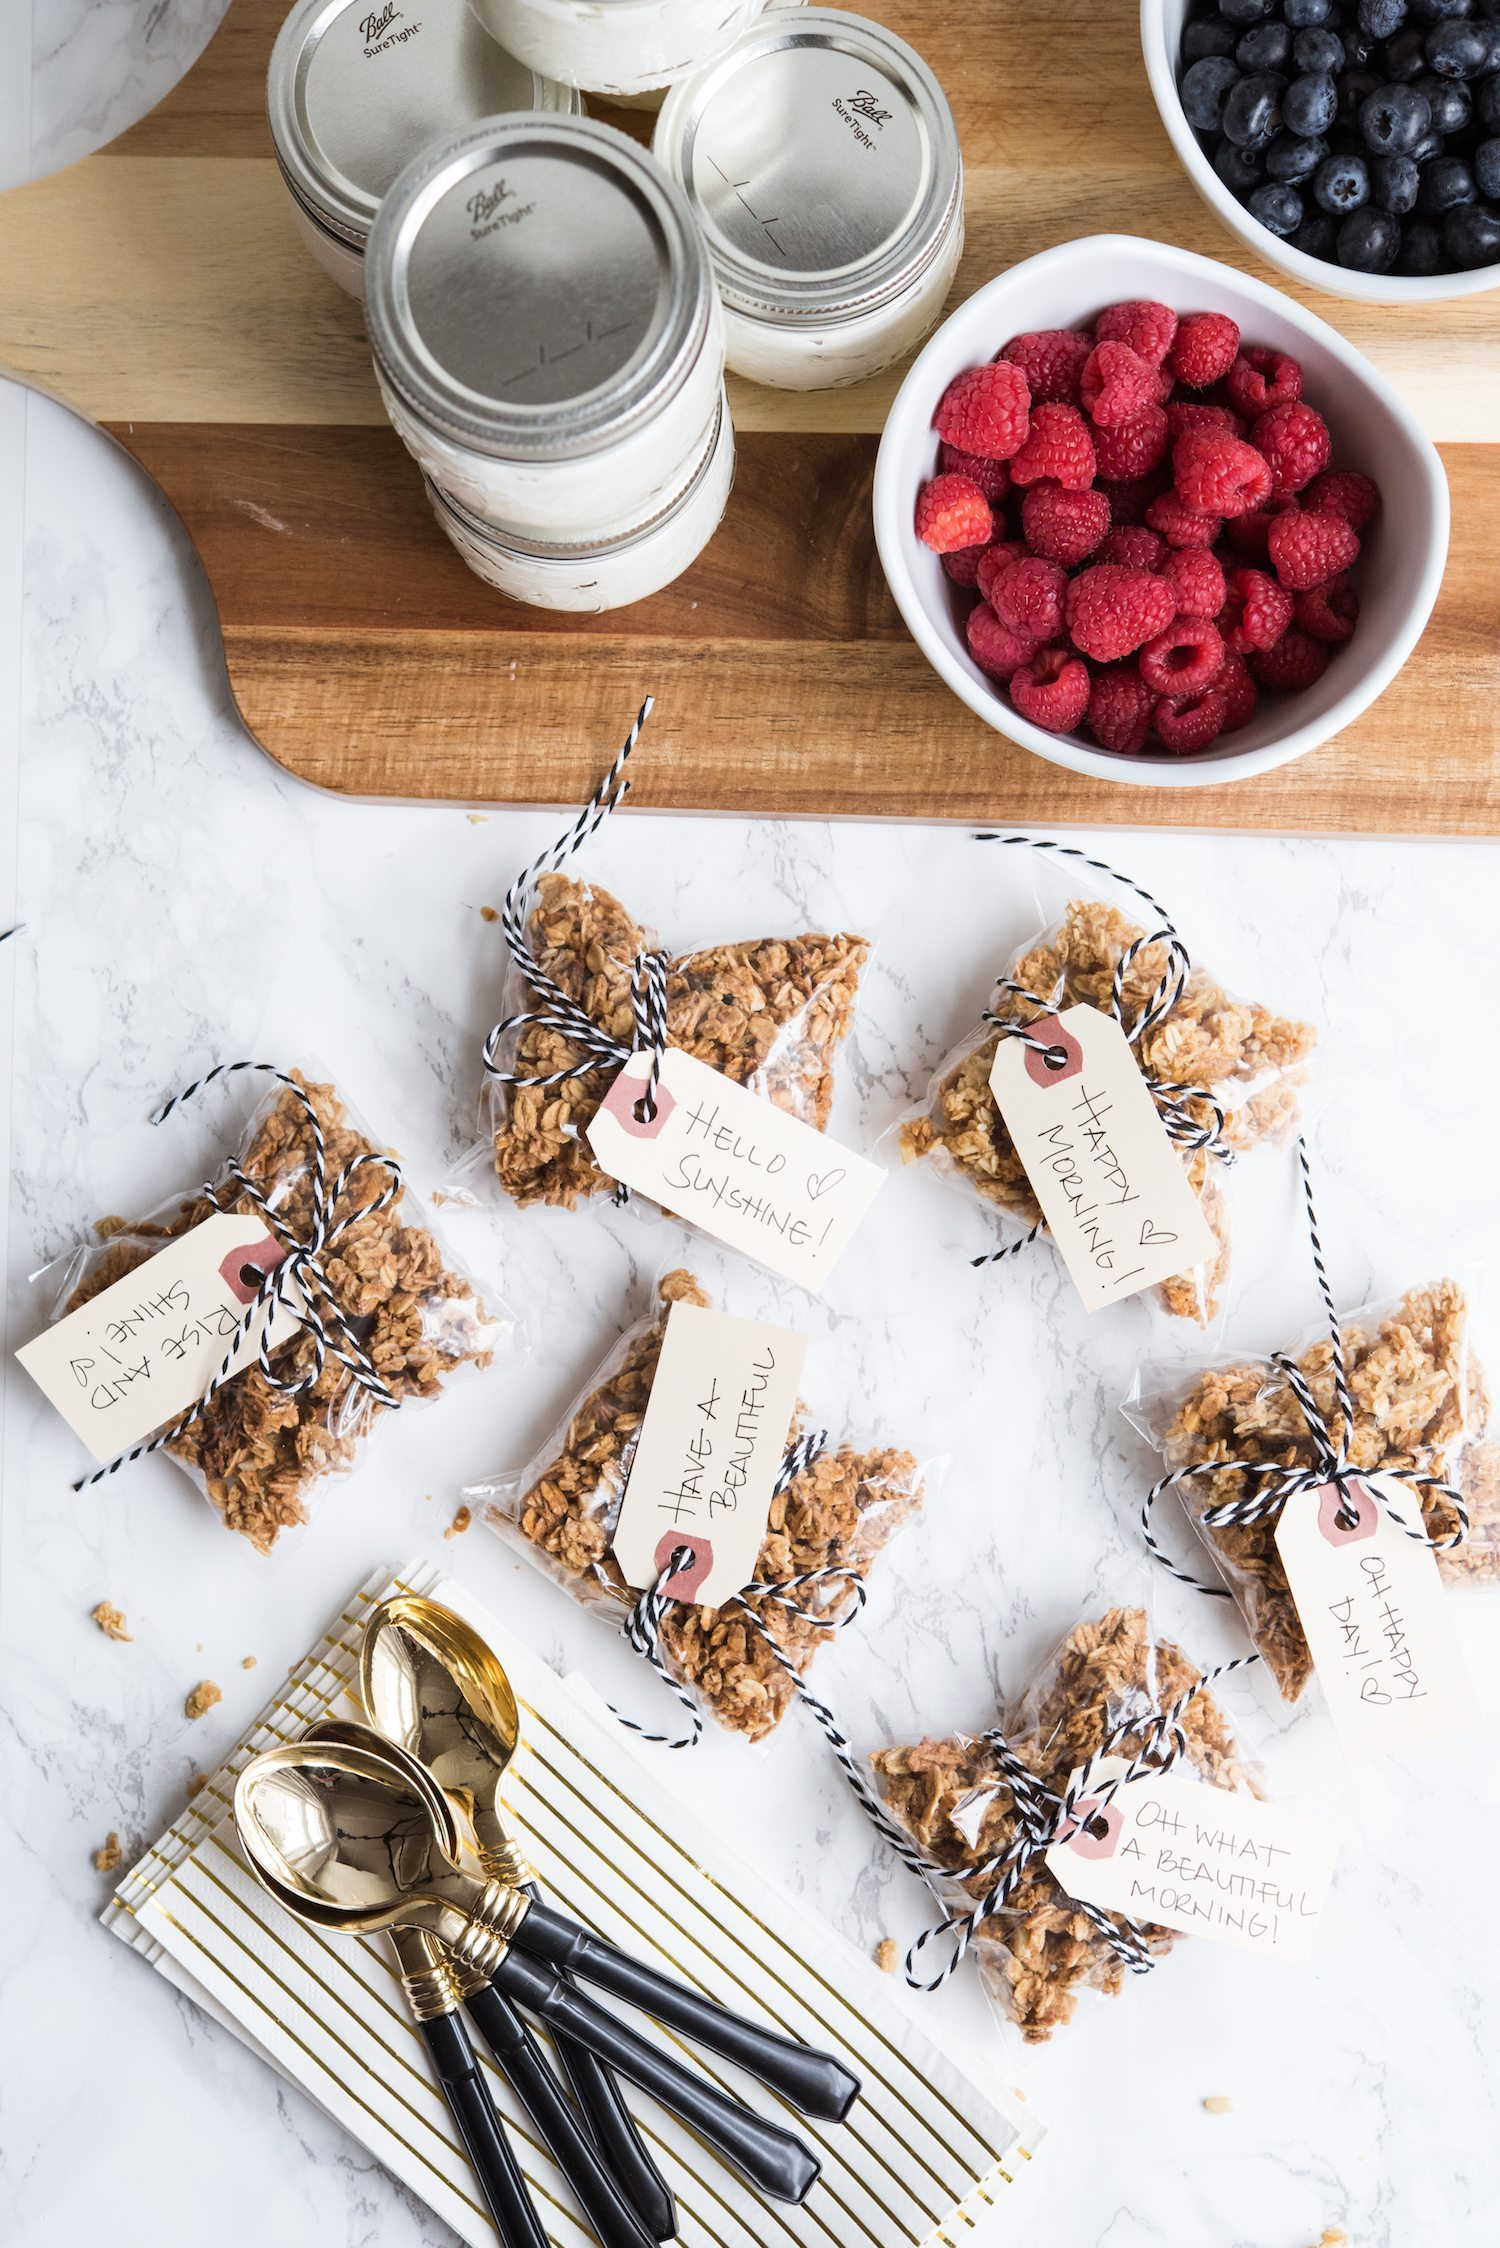 Oh What a Beautiful Morning! Granola Parfait Breakfast To-Go Jars